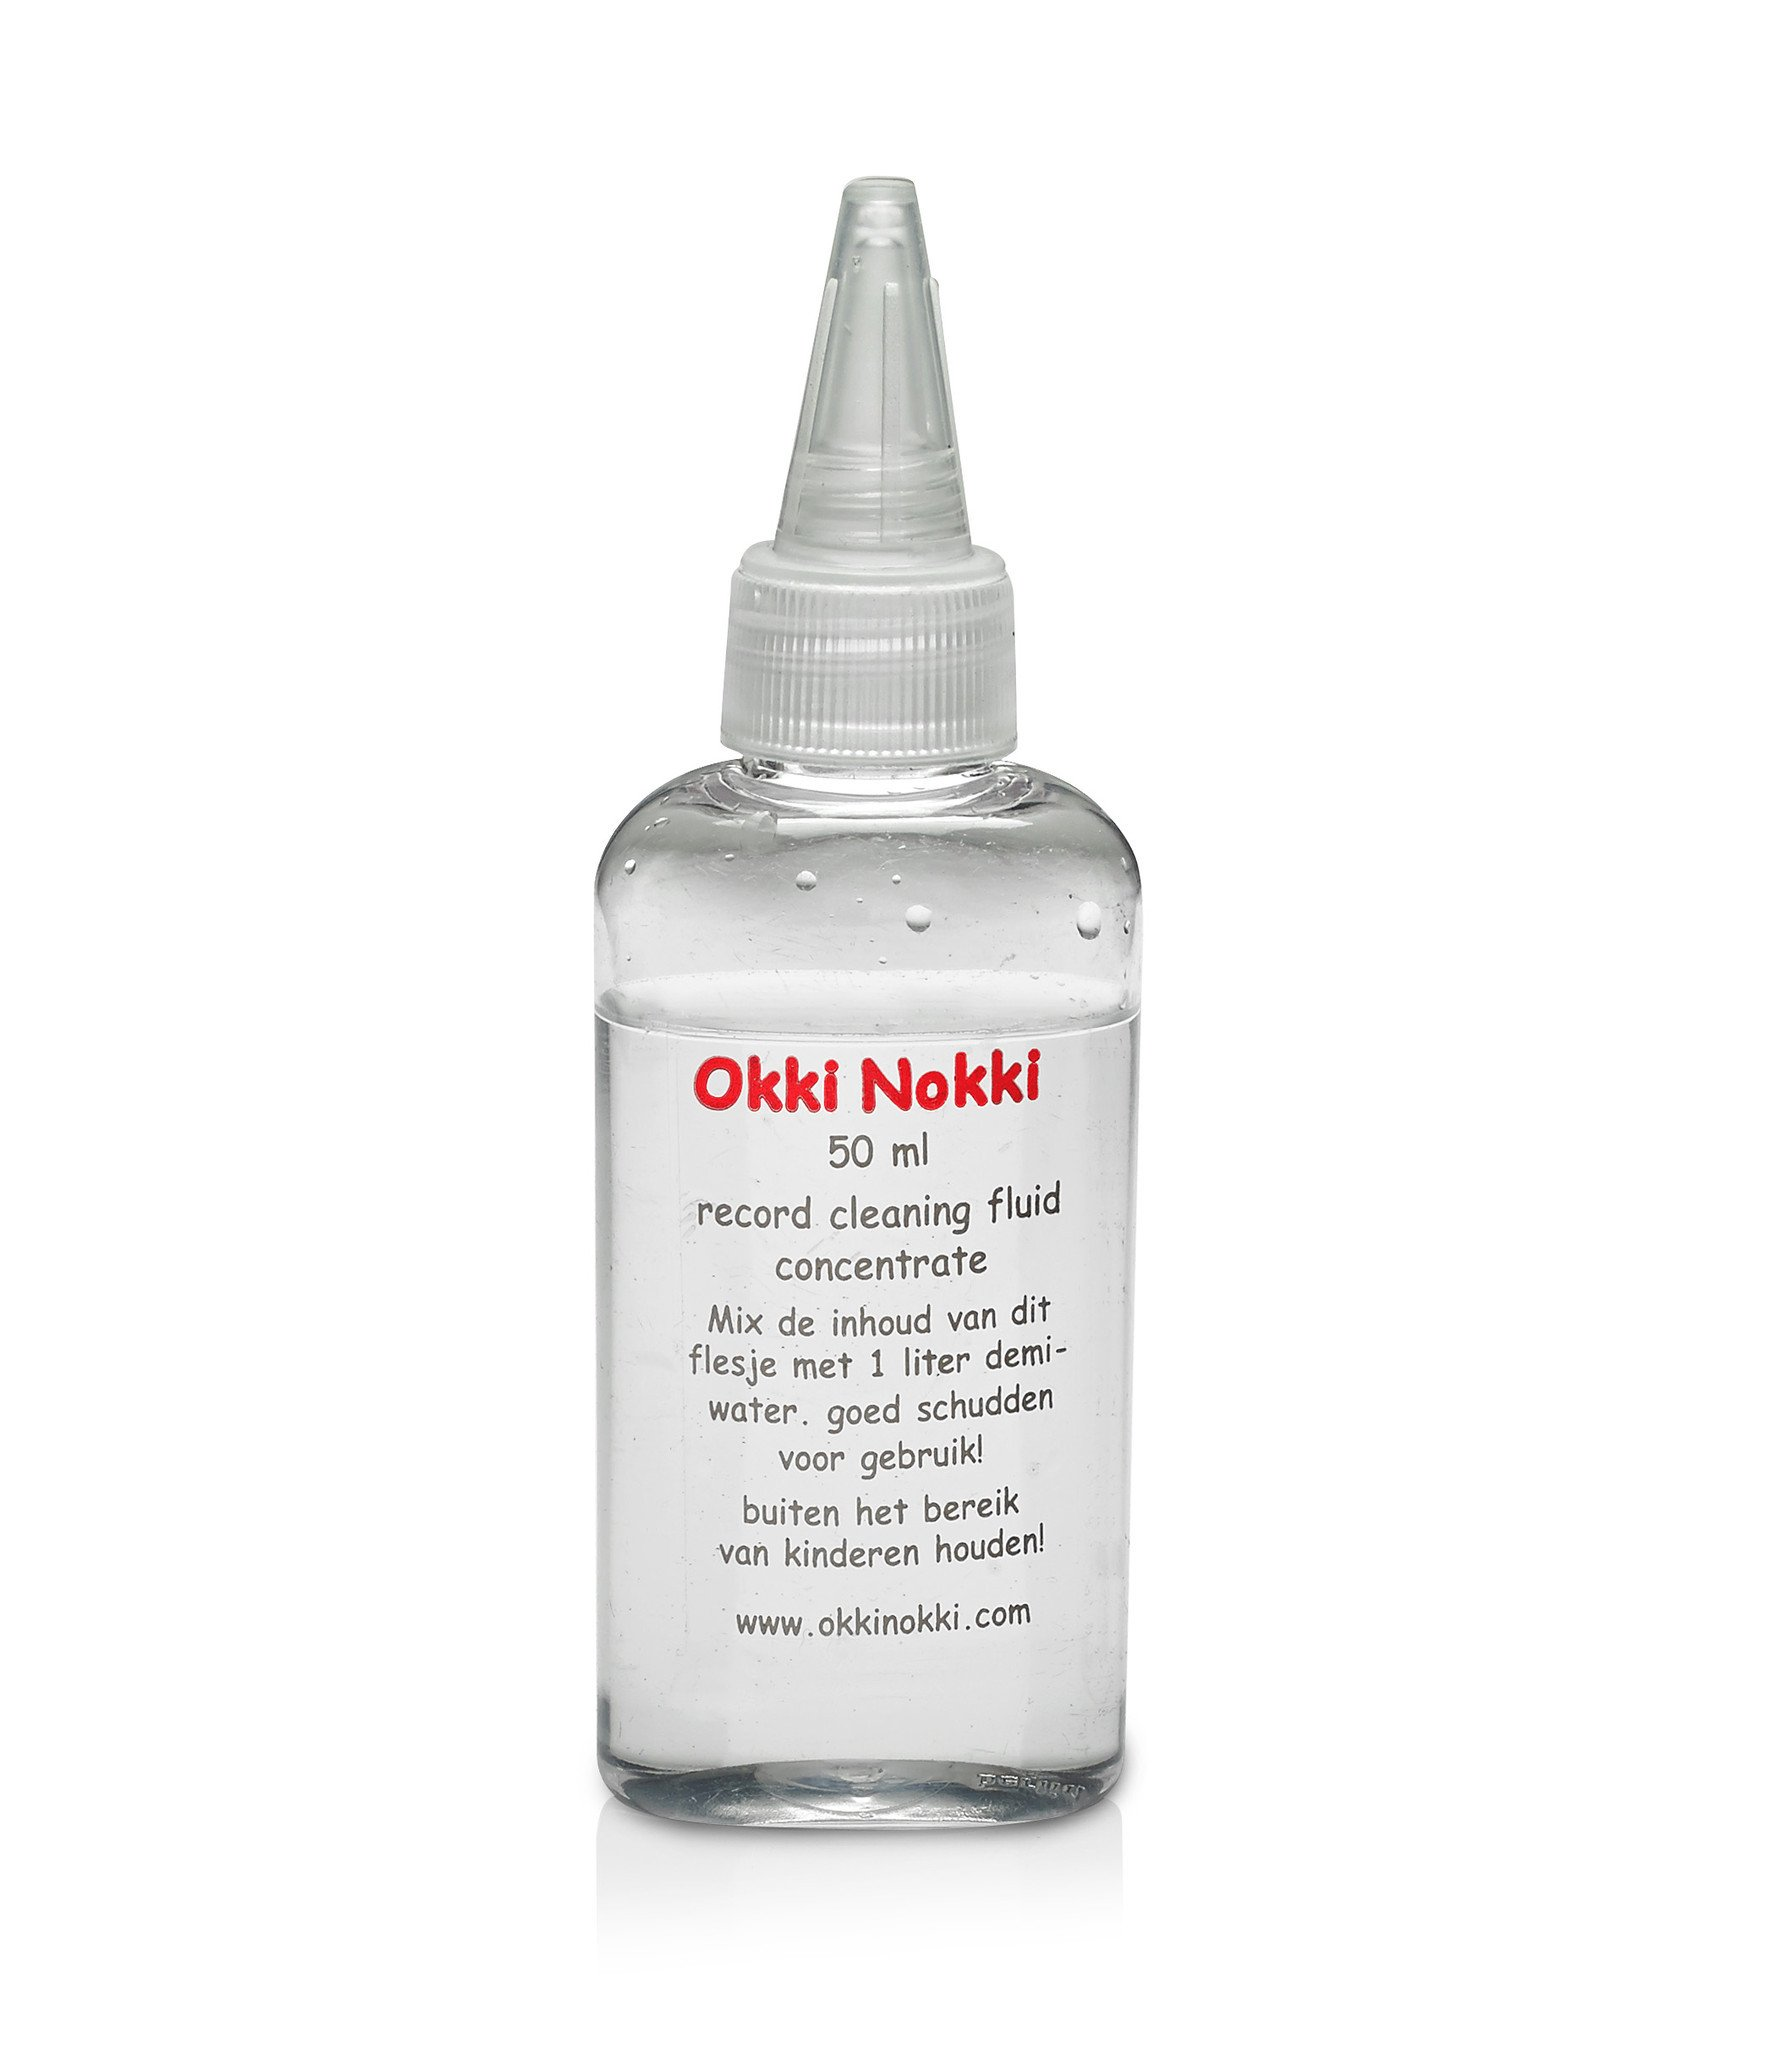 Okki Nokki Record Cleaning Fluid